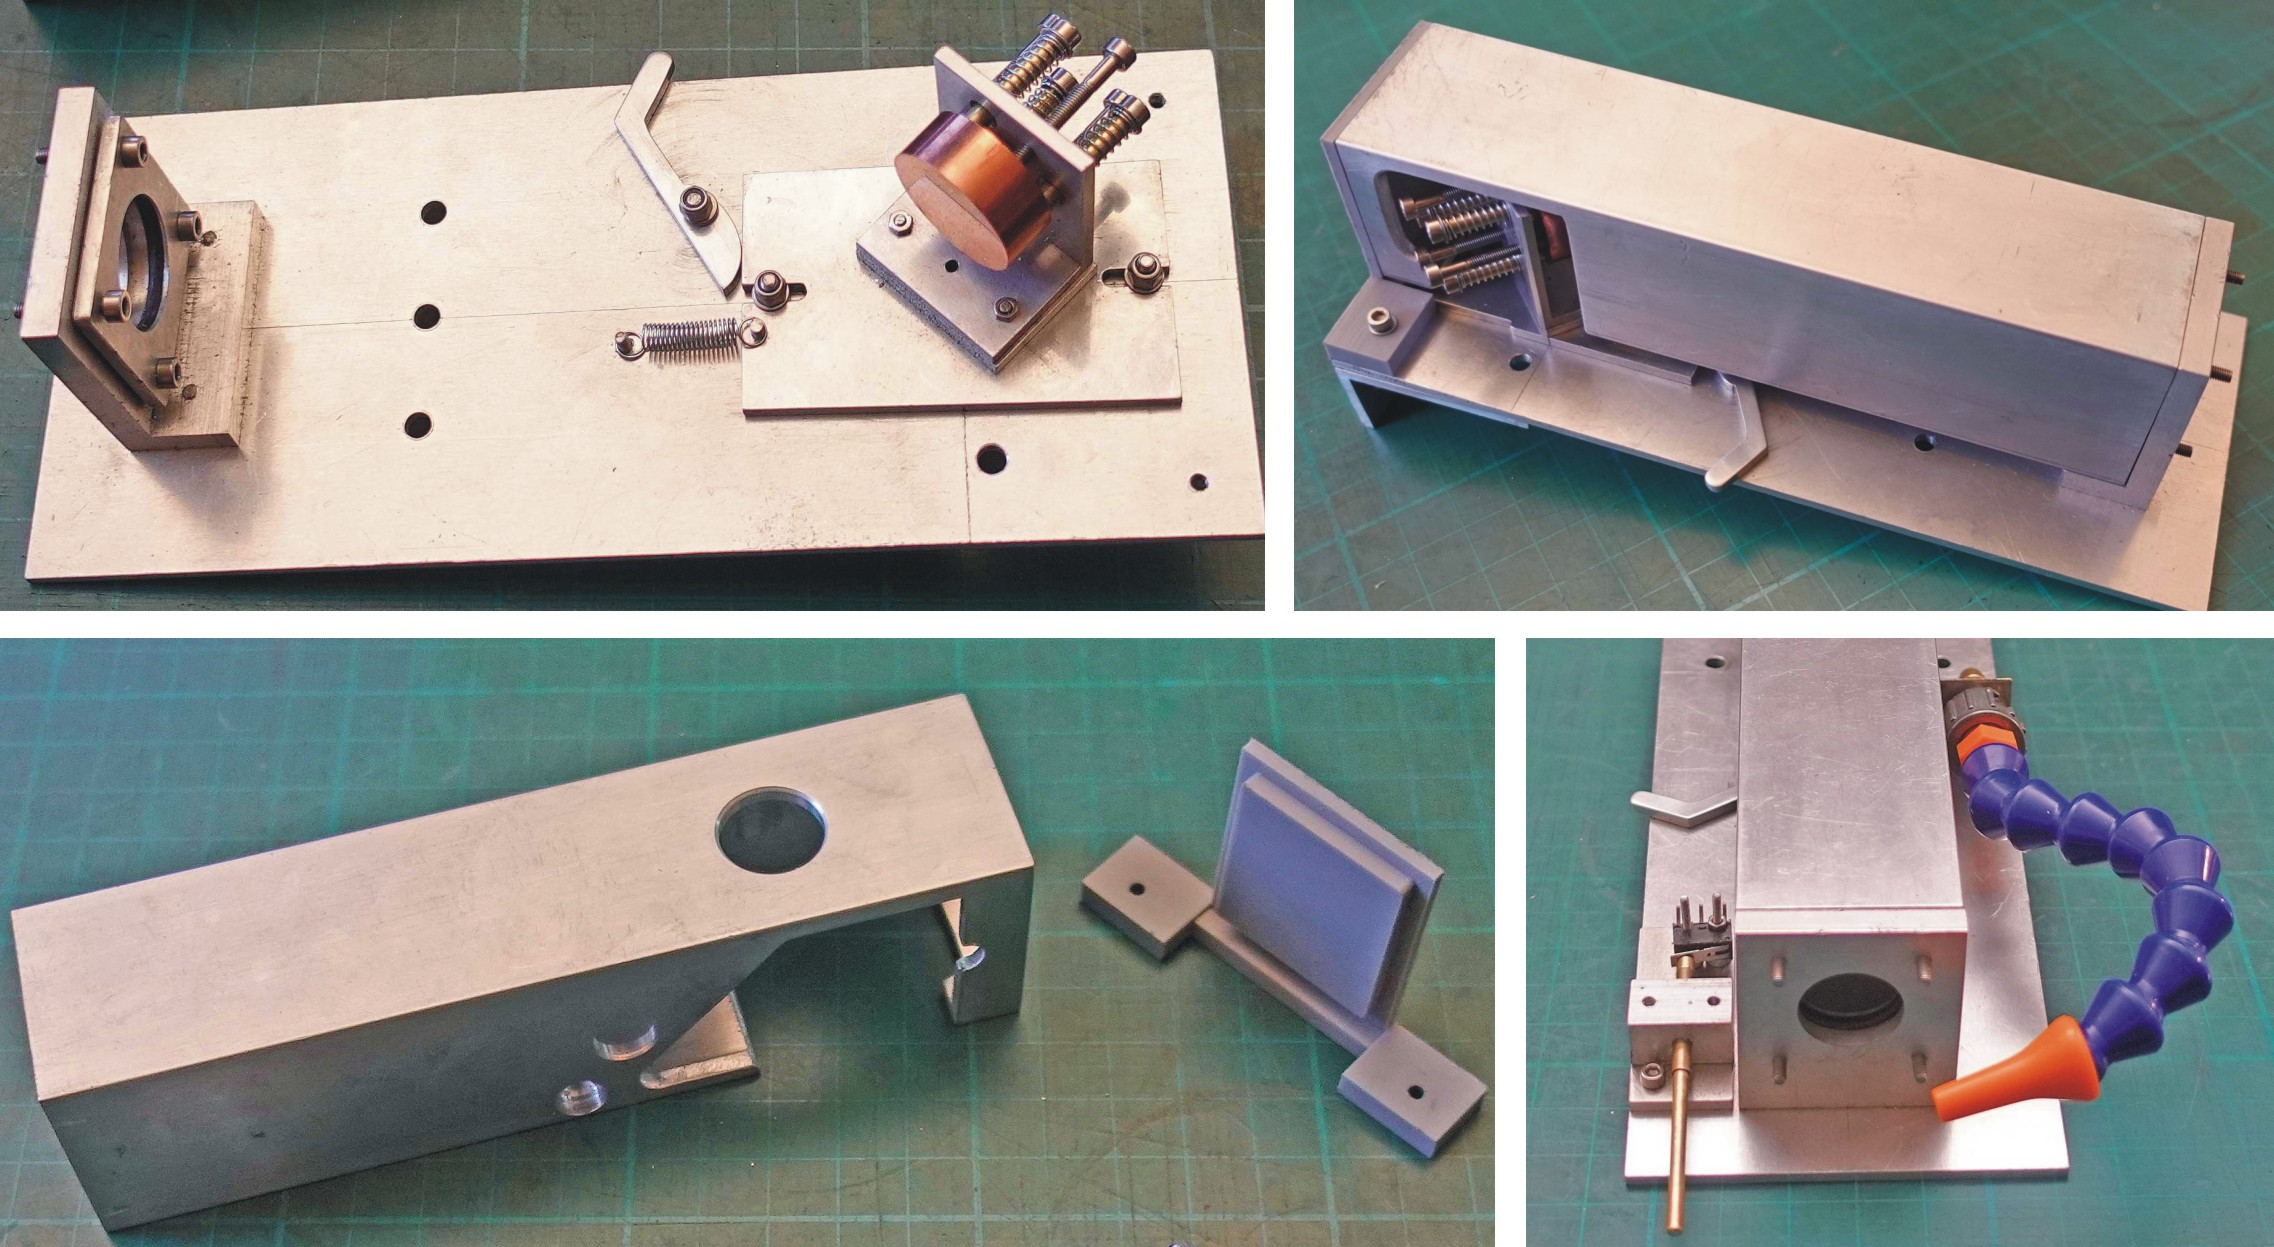 Laser cutter mirror and lens assembly